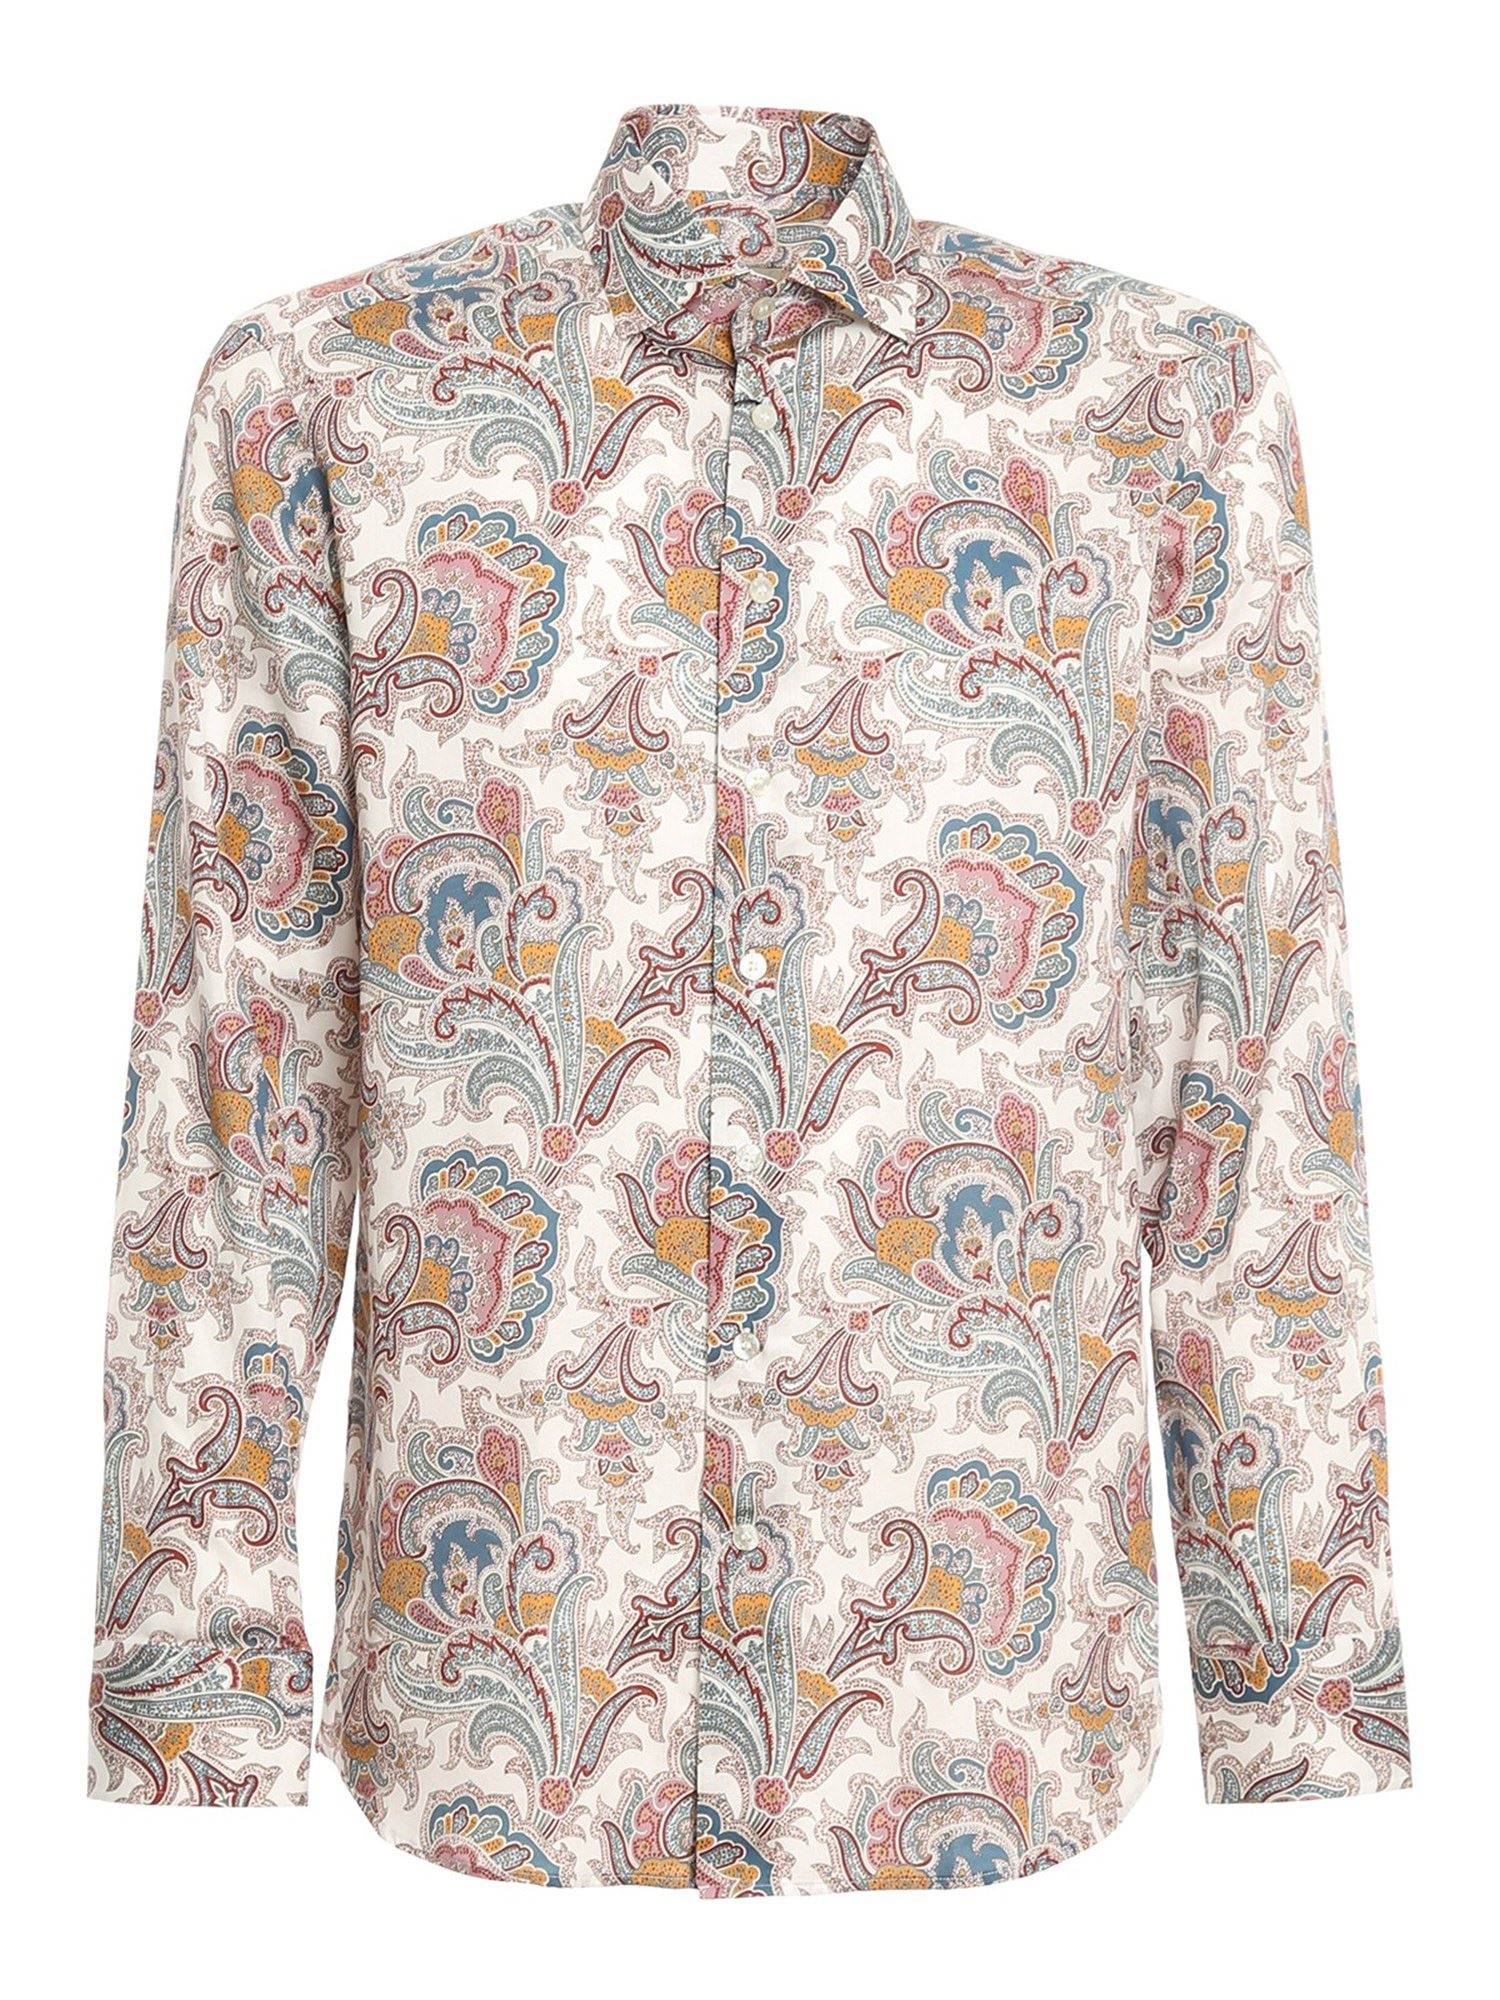 Etro PAISLY COTTON SHIRT IN MULTICOLOR